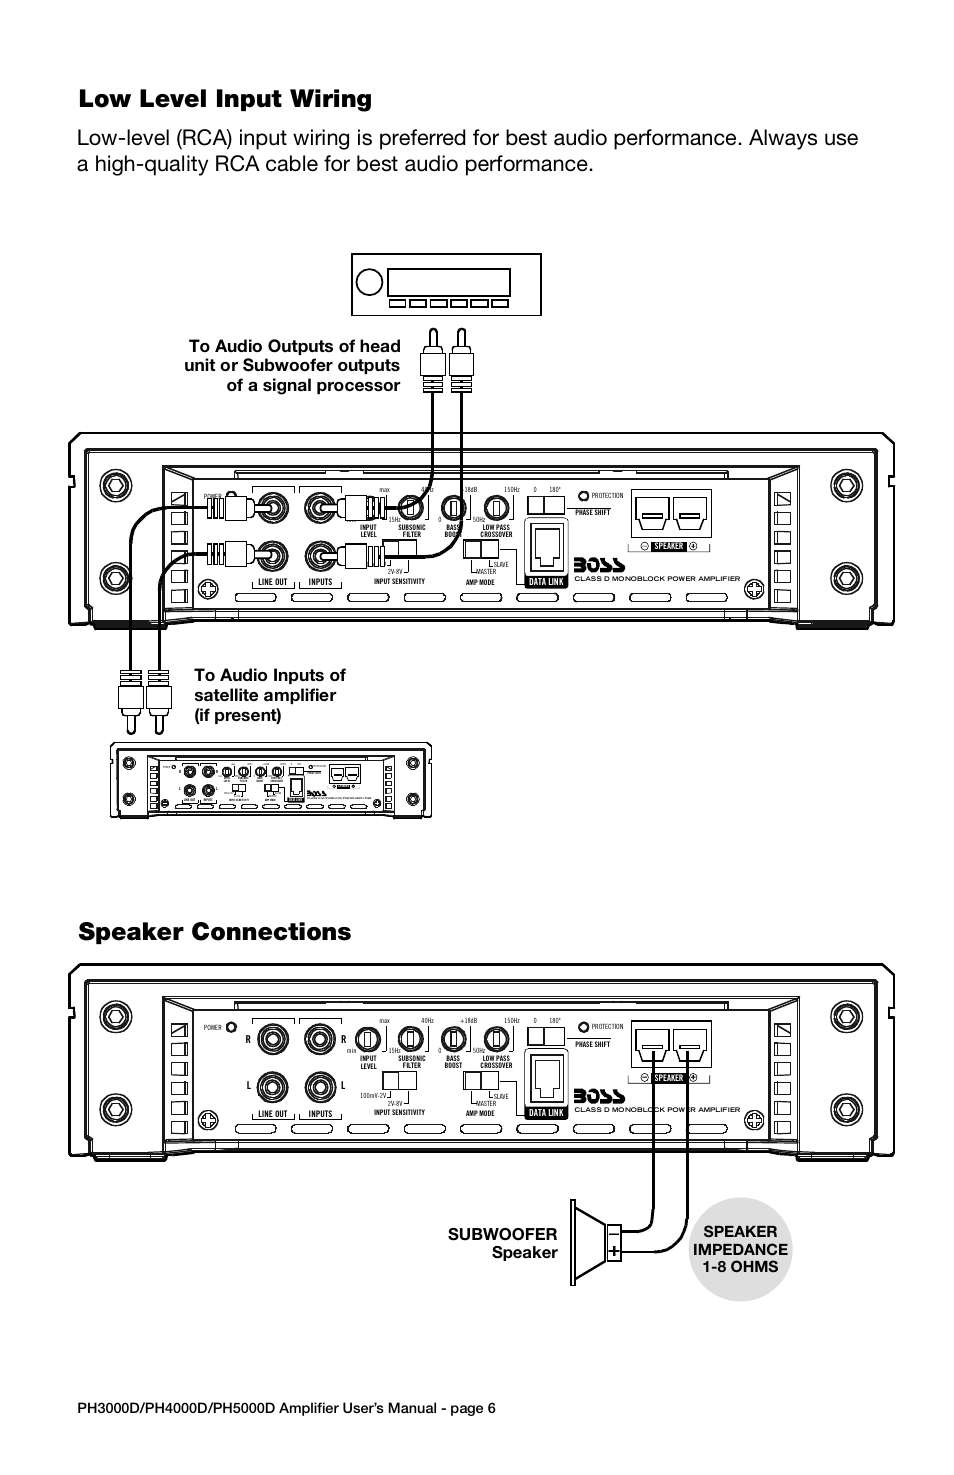 medium resolution of troubleshooting specifications low level input wiring power connections speaker connections model